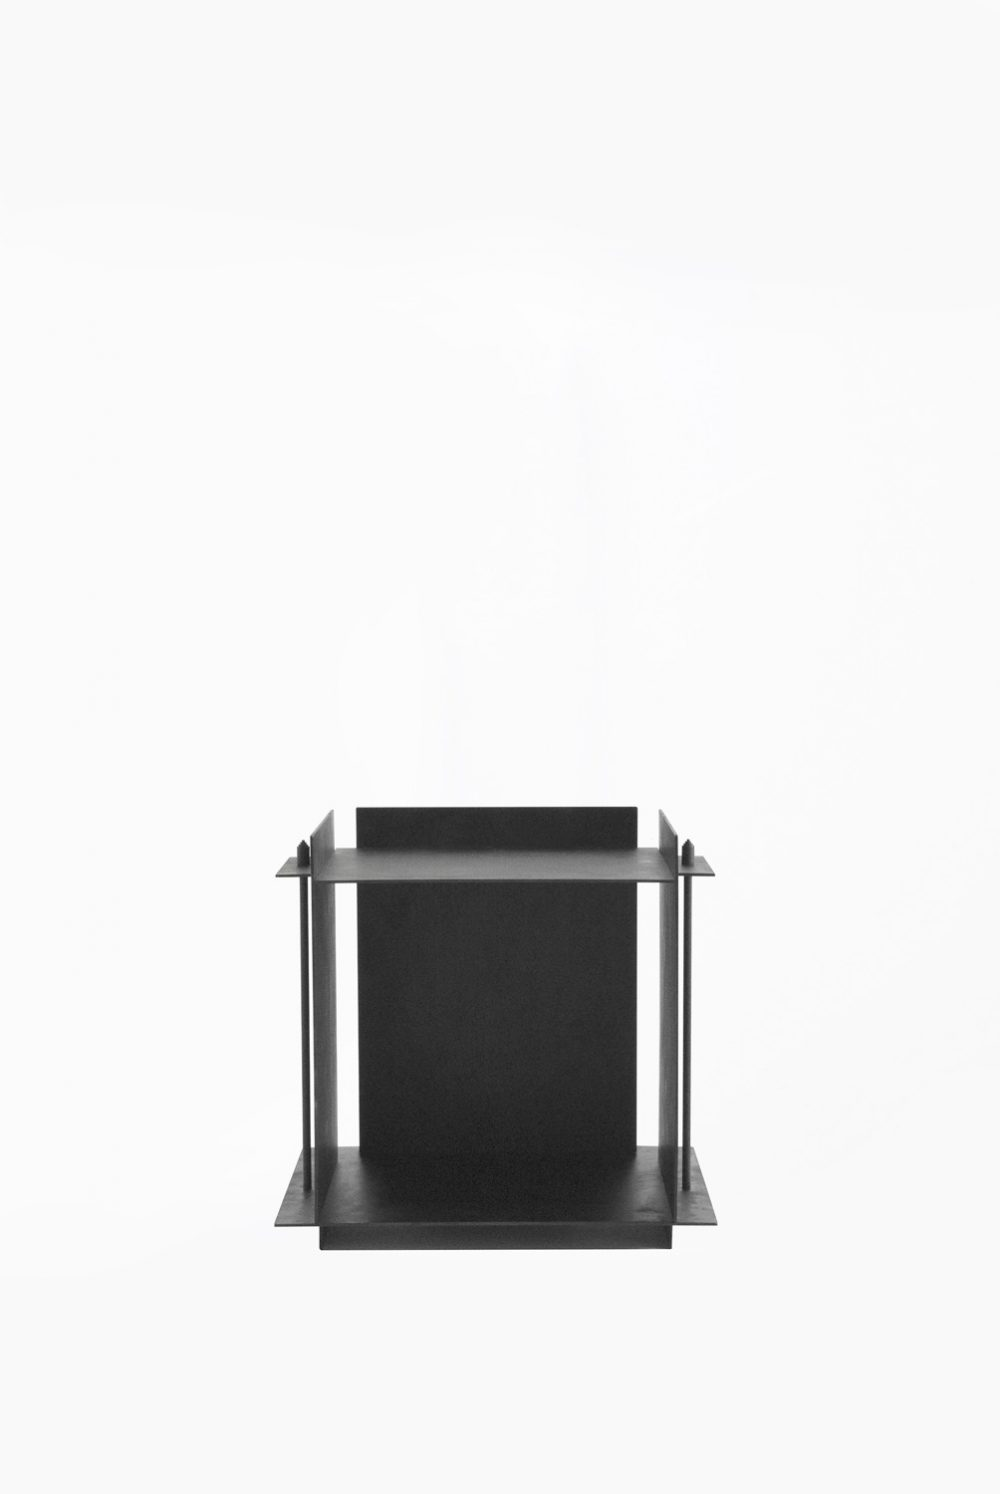 Sizar Alexis Pilier Blackened Steel Side Table